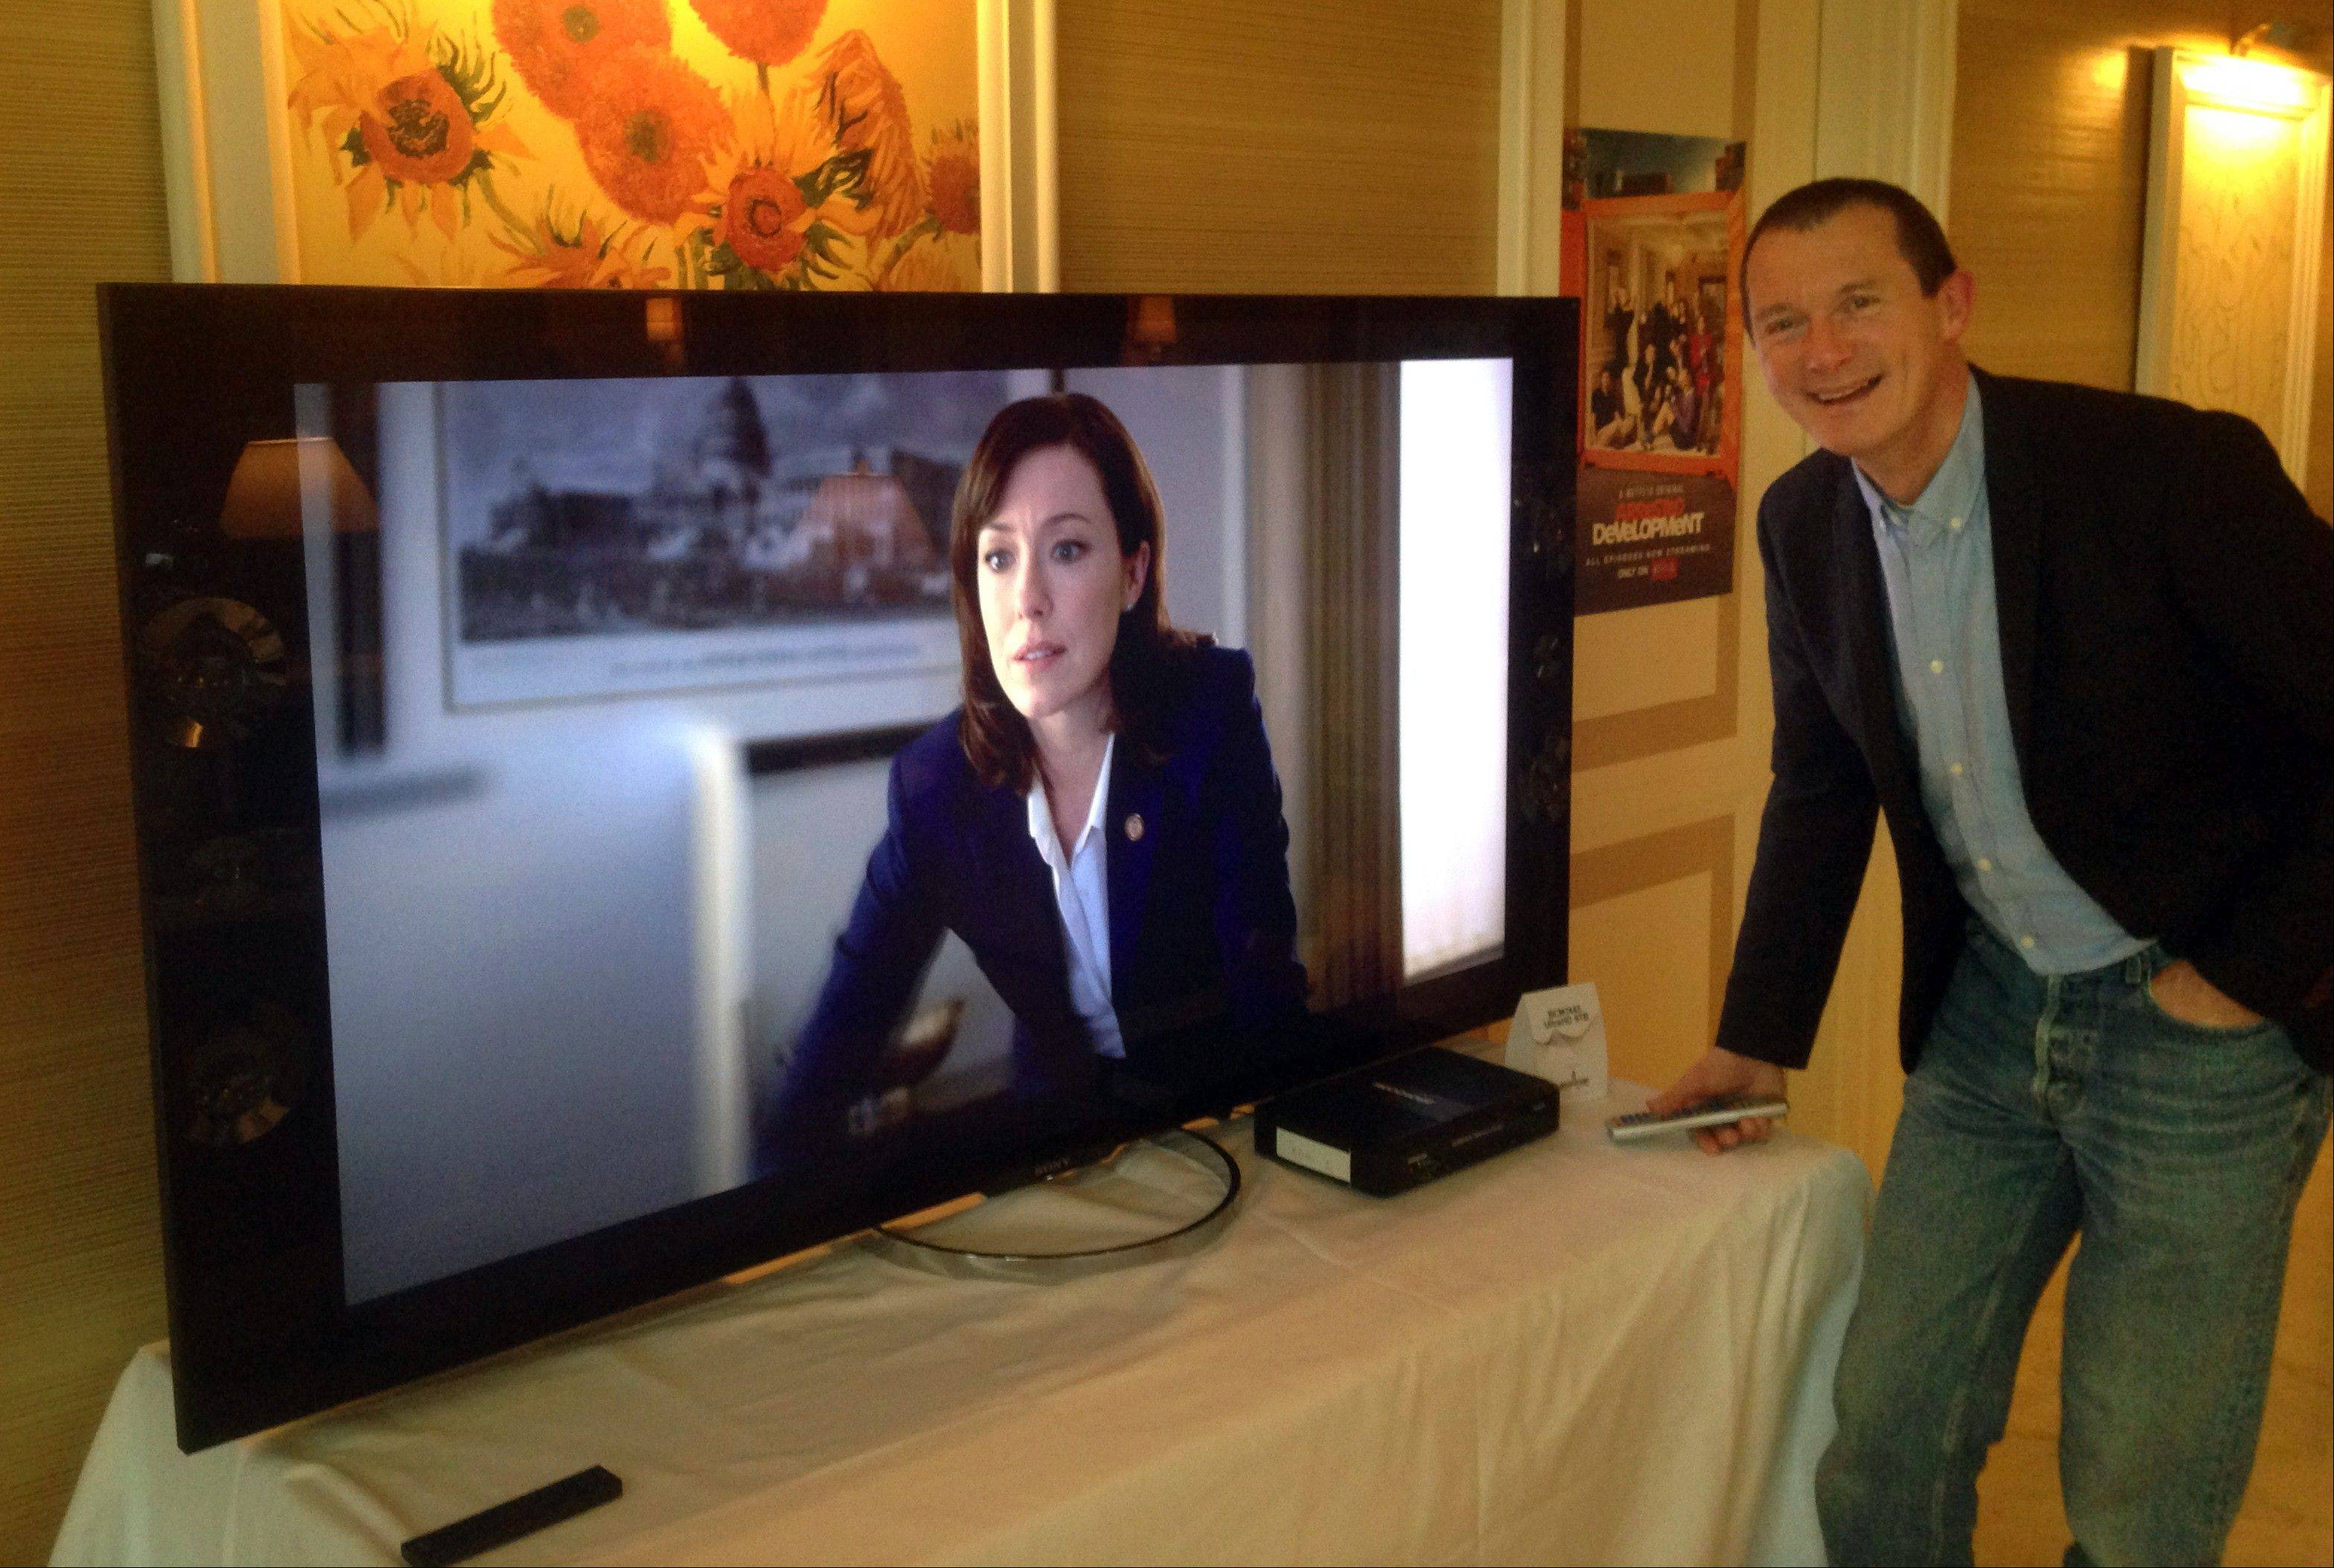 Neil Hunt, Netflix's chief product officer, demonstrates ultra high definition streaming of a ìHouse of Cardsî trailer on a Sony TV on the sidelines of the International Consumer Electronics Show in Las Vegas.